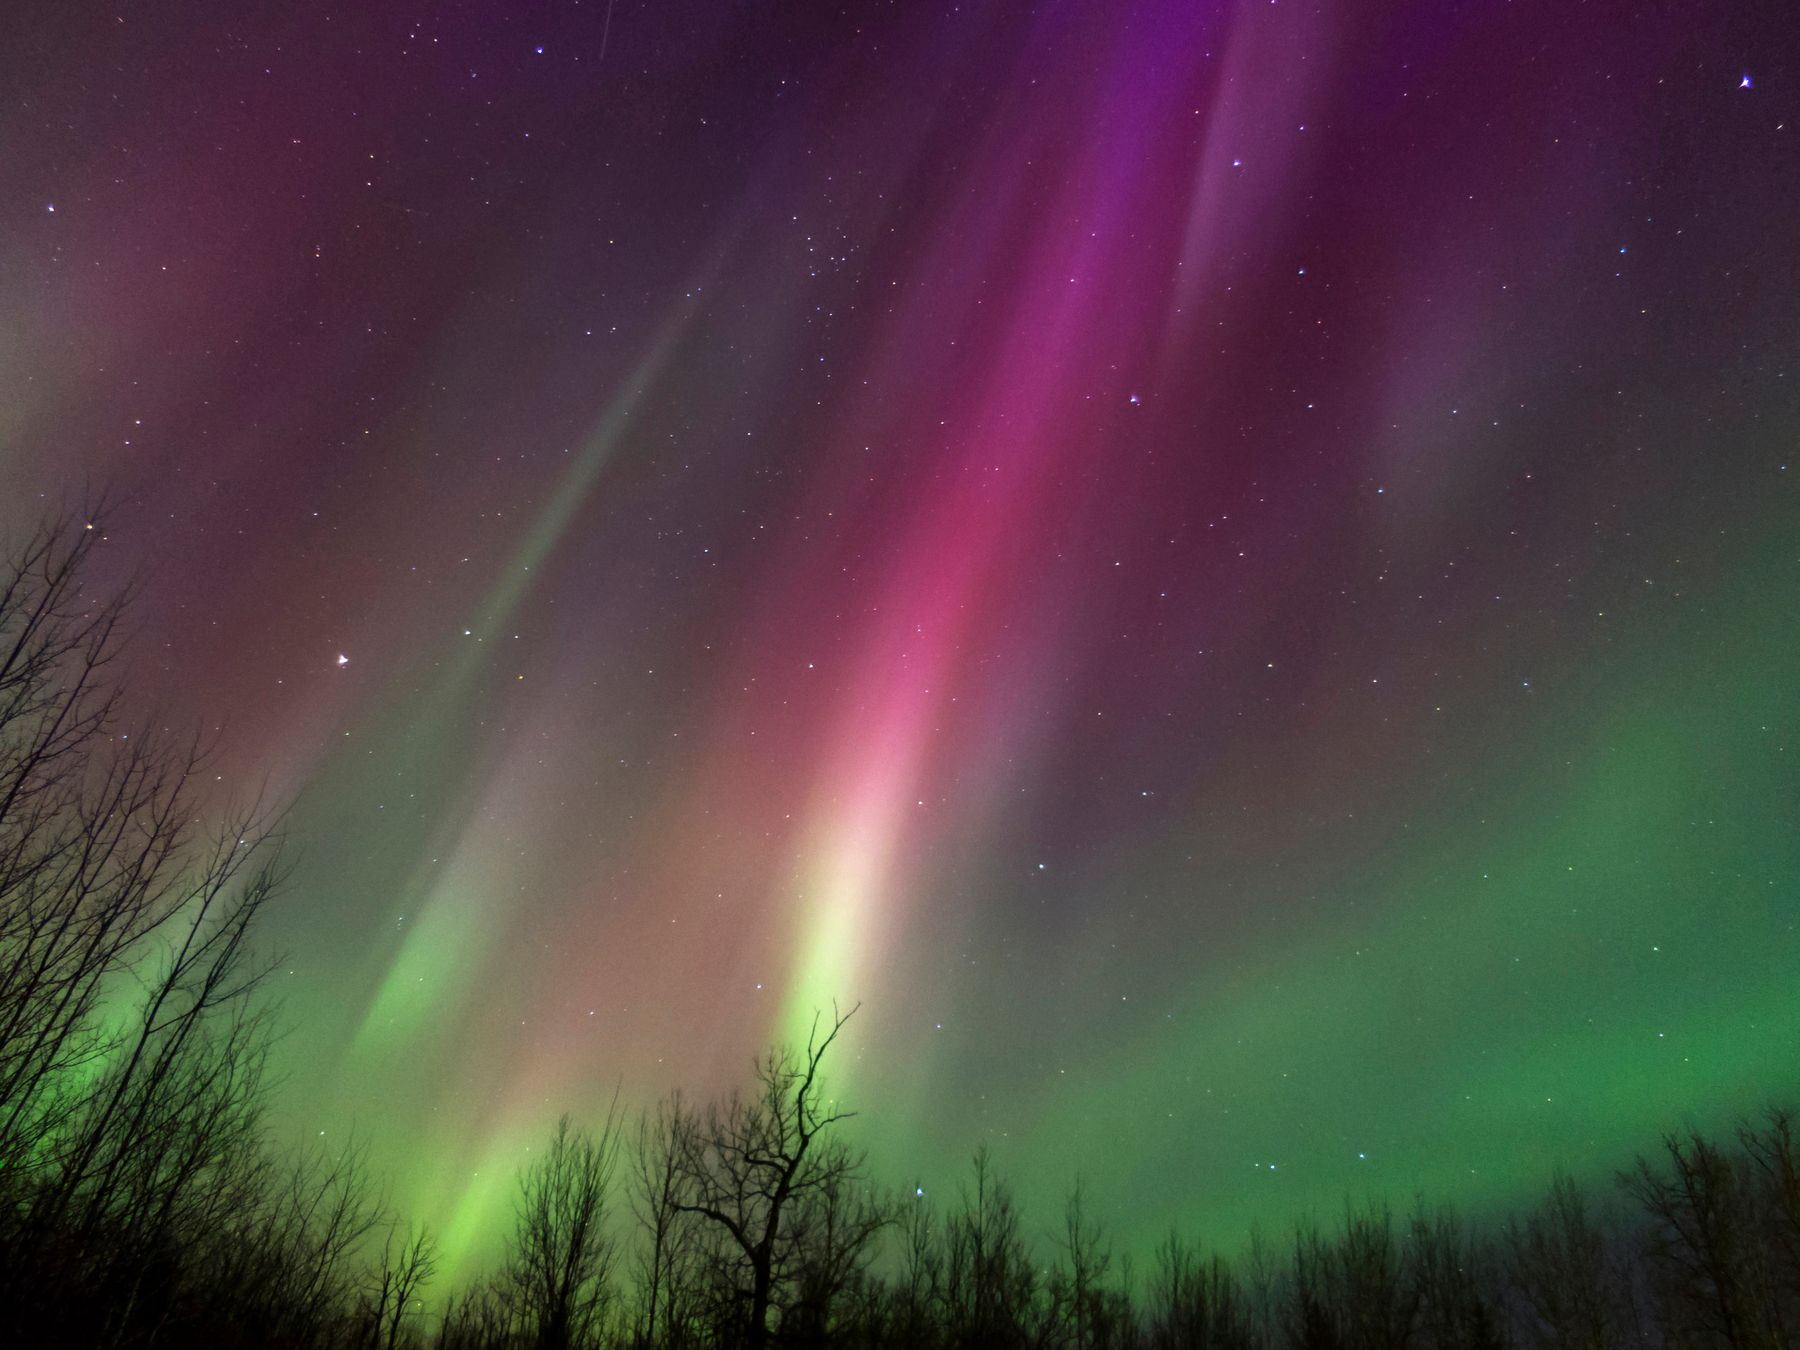 October is a great time to experience the Northern Lights